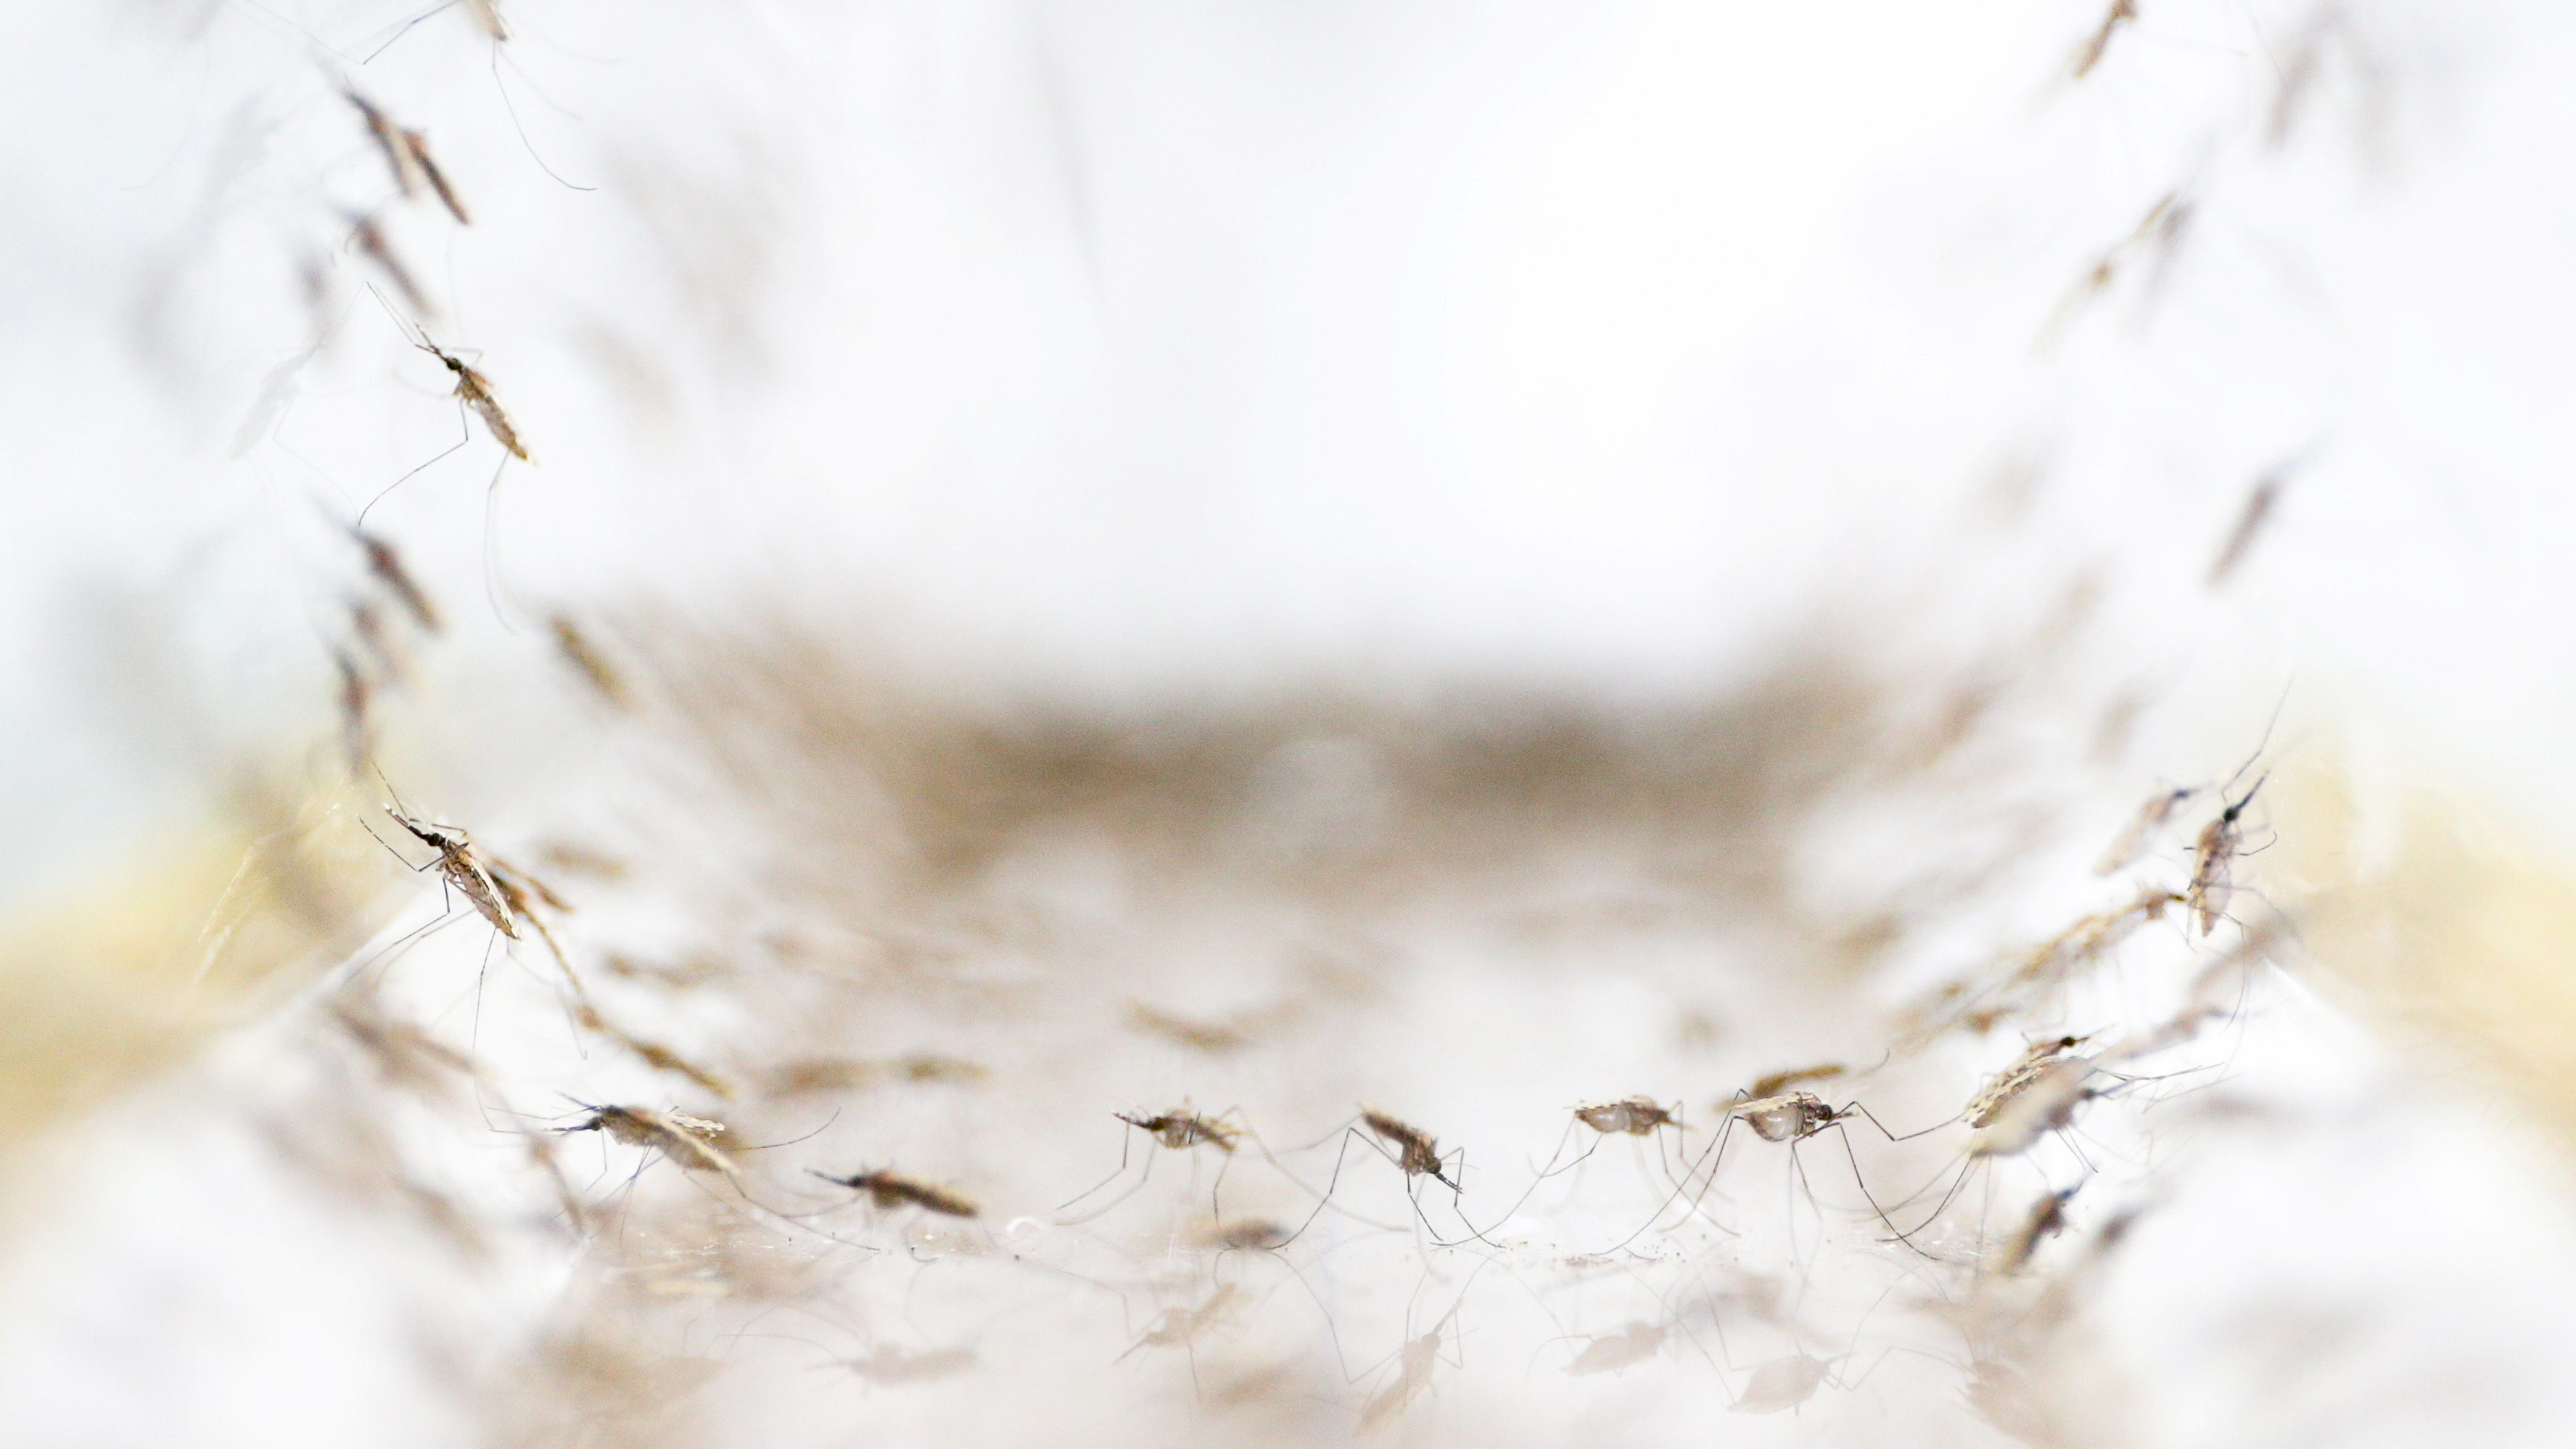 Anopheles minimus mosquitoes are pictured at a lab in the Public Health Ministry in Bangkok, Thailand, November 9, 2017. Picture taken November 9, 2017.